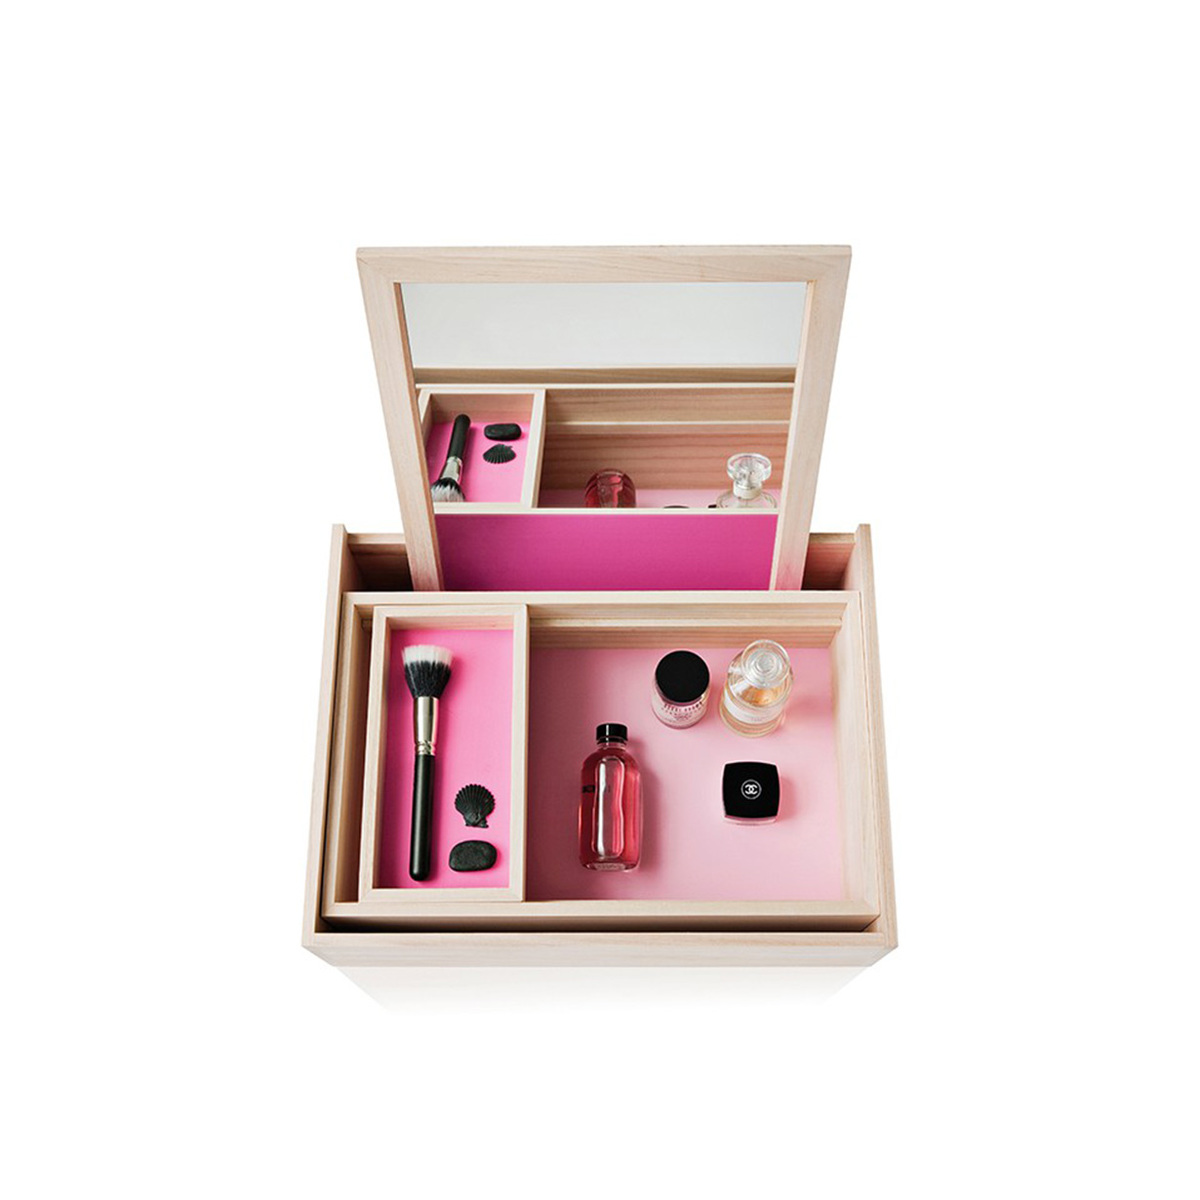 LOVEThESIGN | Scatola Balsabox Personal rosa